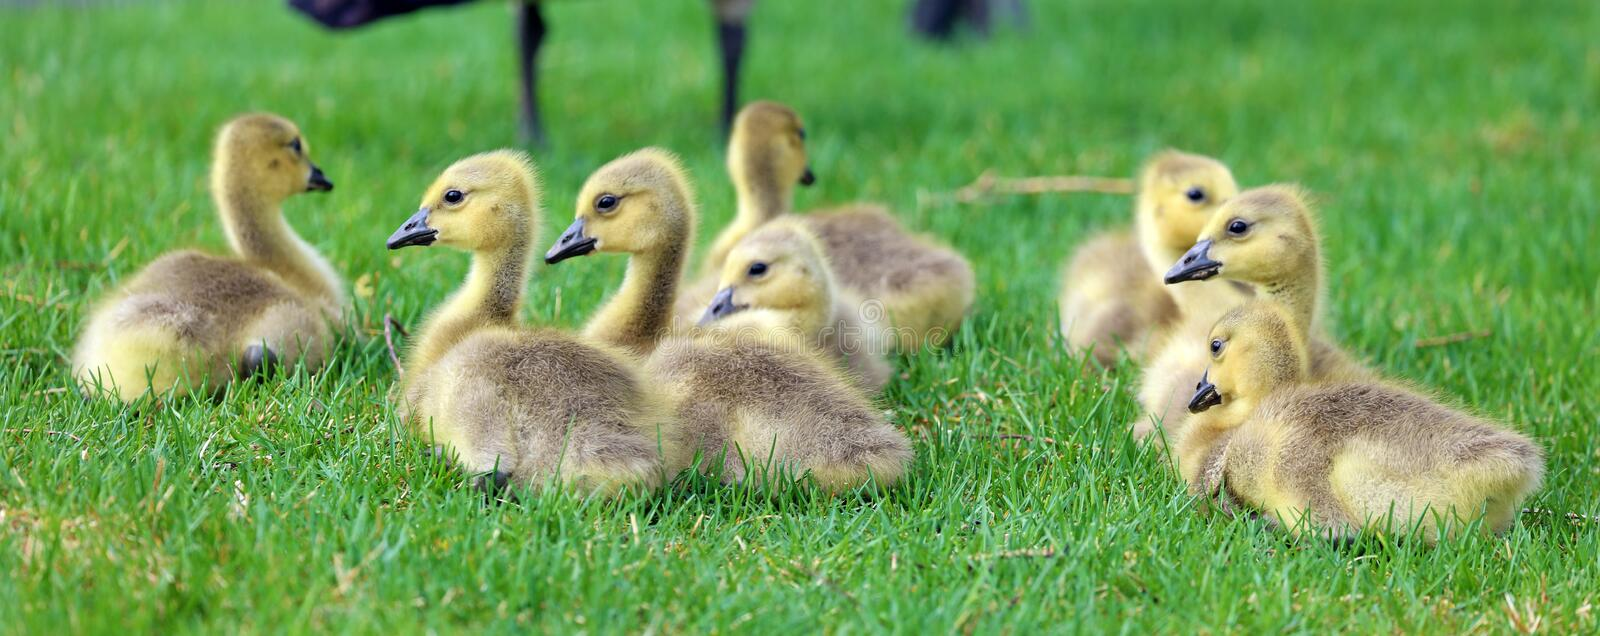 Canadian goose with chicks, geese with goslings walking in green grass in Michigan during spring. Unique cute picture of this baby birds just a couple days of royalty free stock images